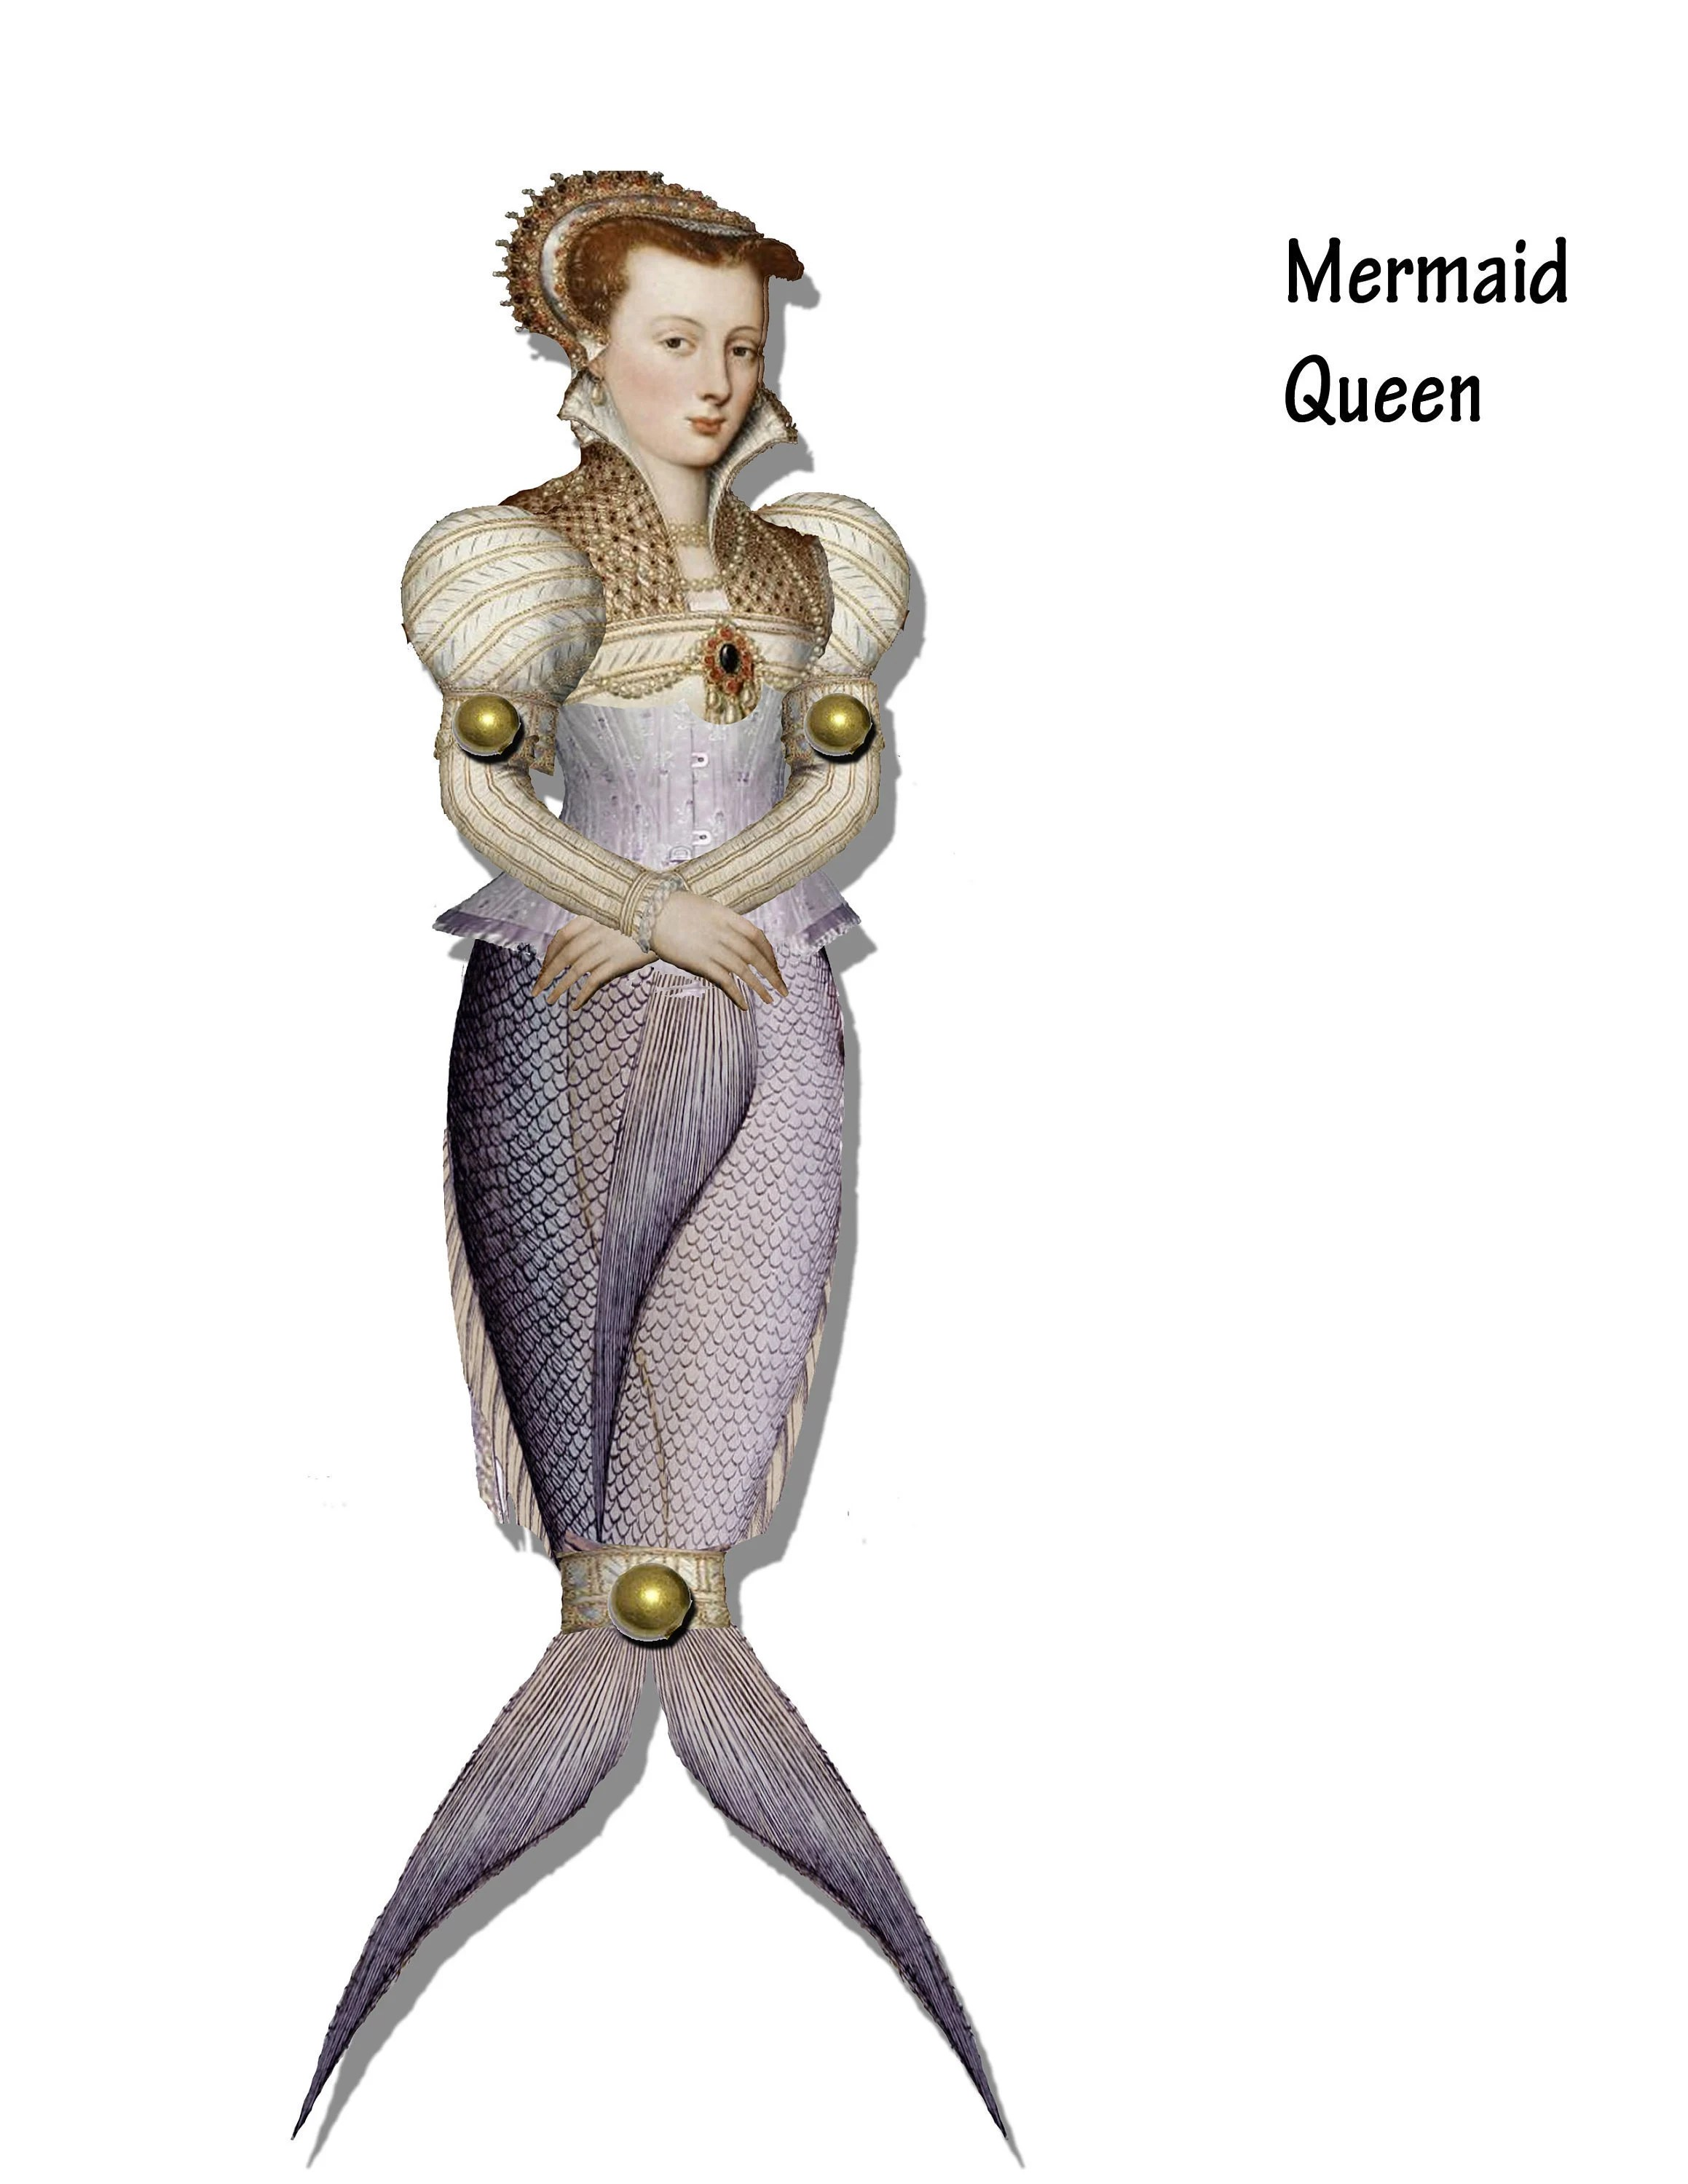 printable Mermaid Queen of the sea articulated paper doll Etsy